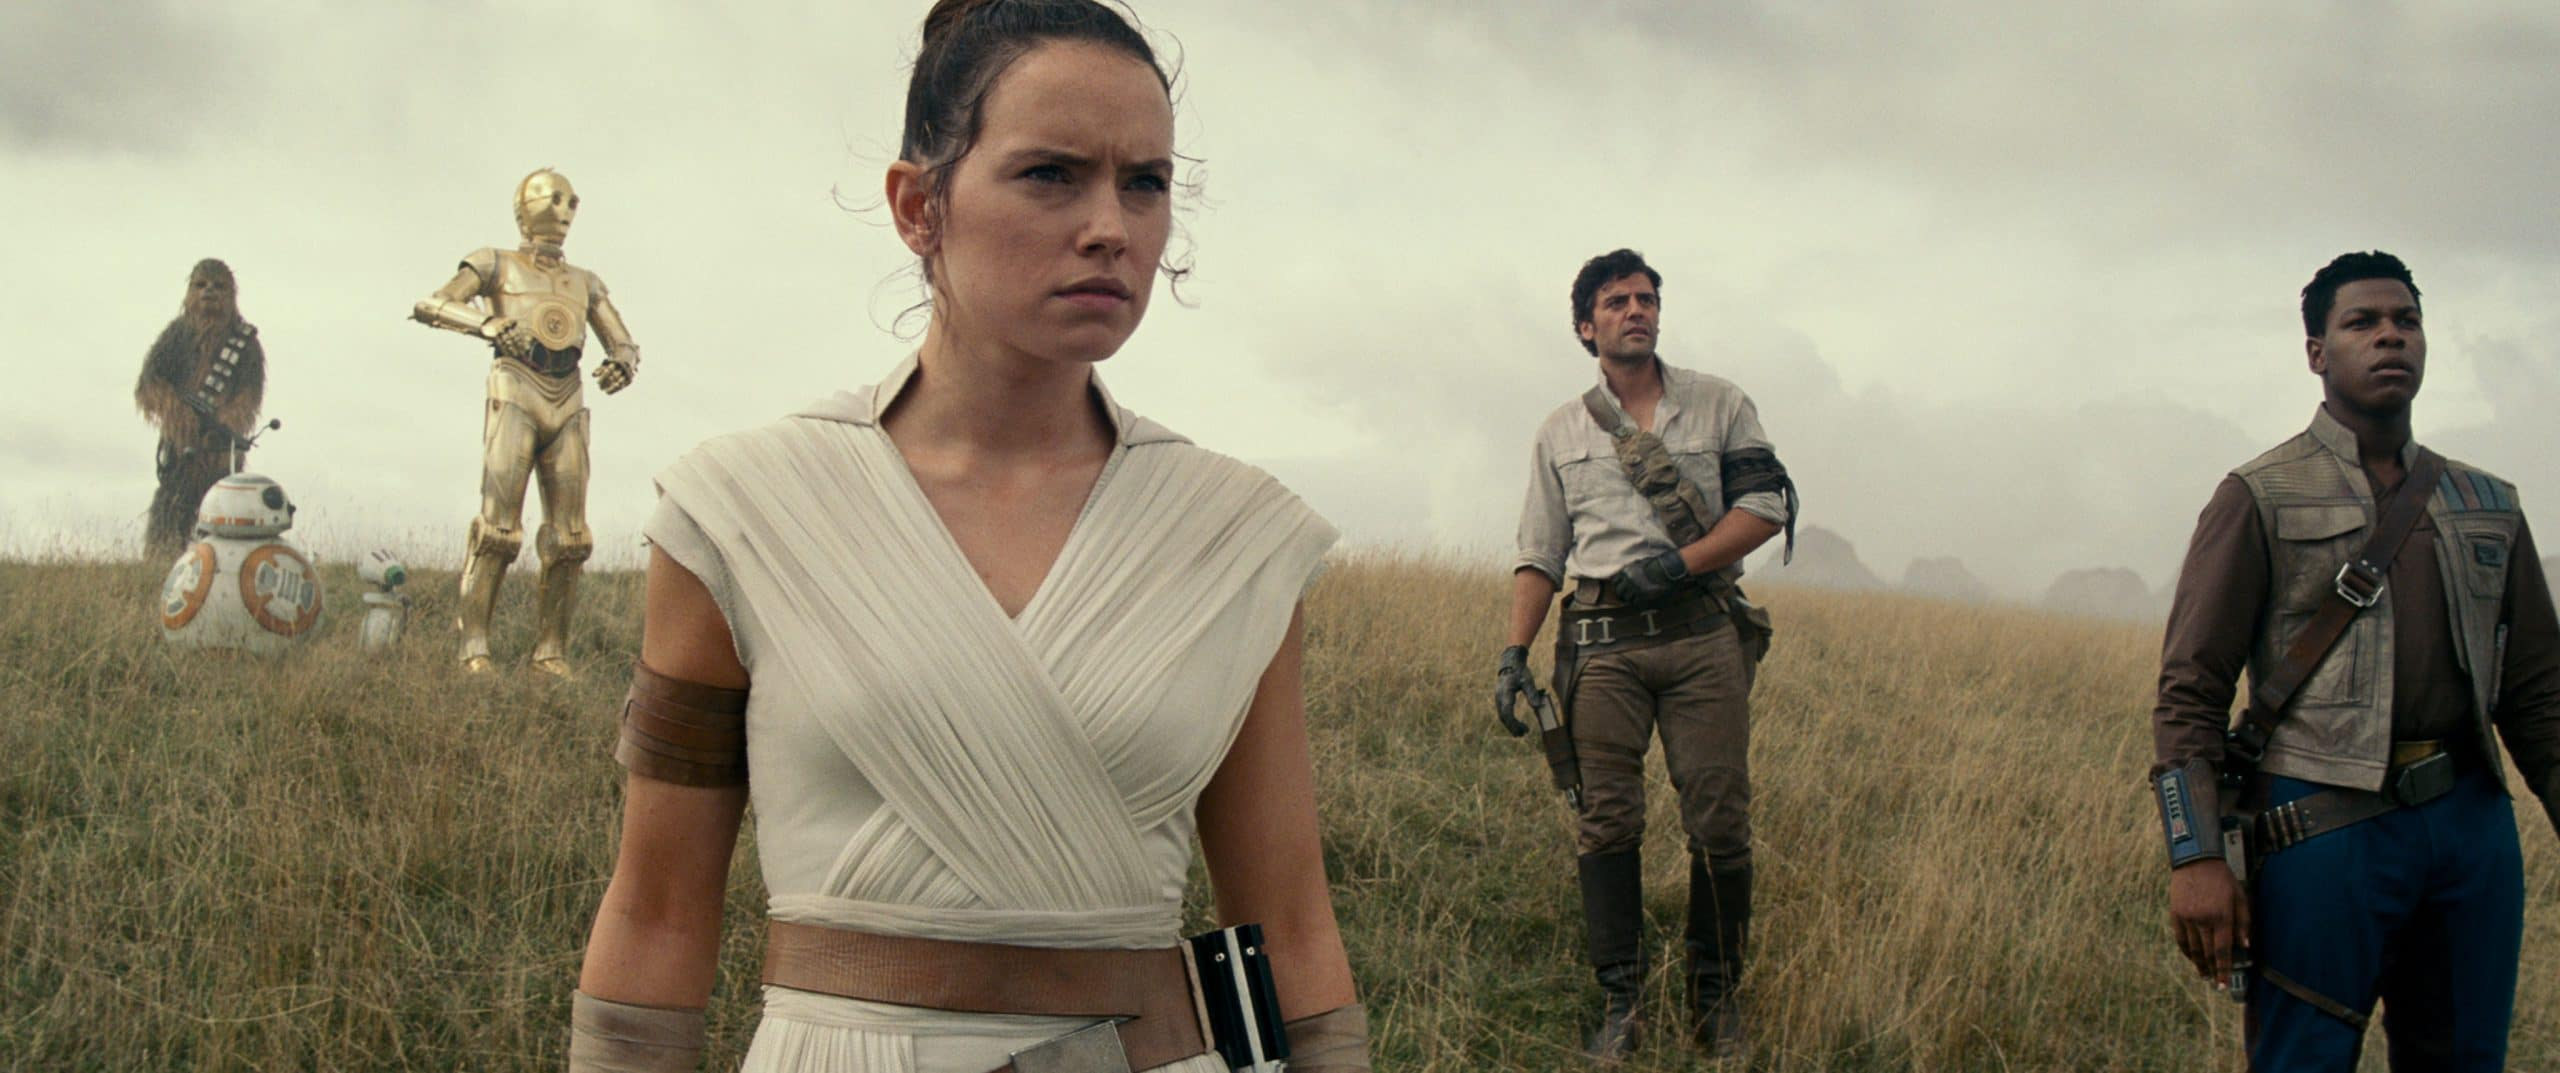 Daisy Ridley Reveals Personal Connection With Rey in Upcoming Star Wars Book